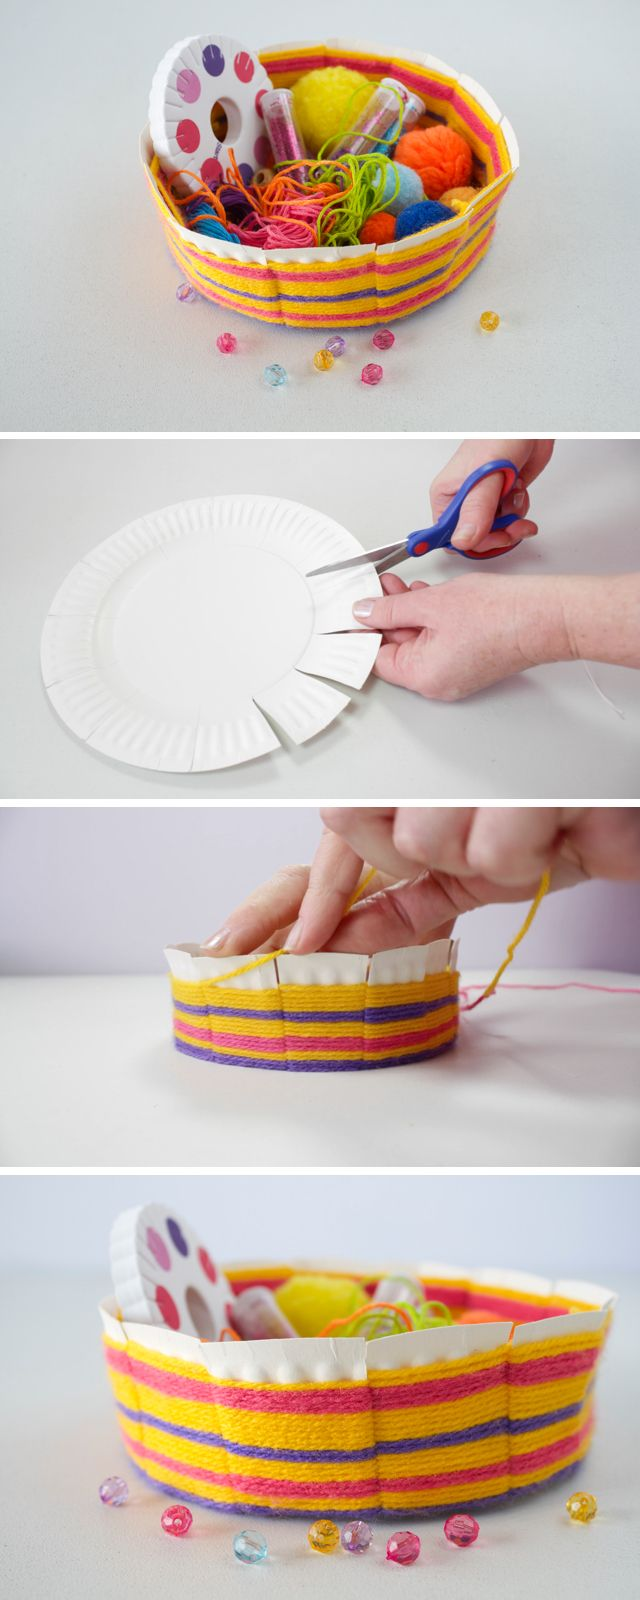 Today, we have a fantastic craft for you! We are going to make this easy woven bowl made out of a paper plate.